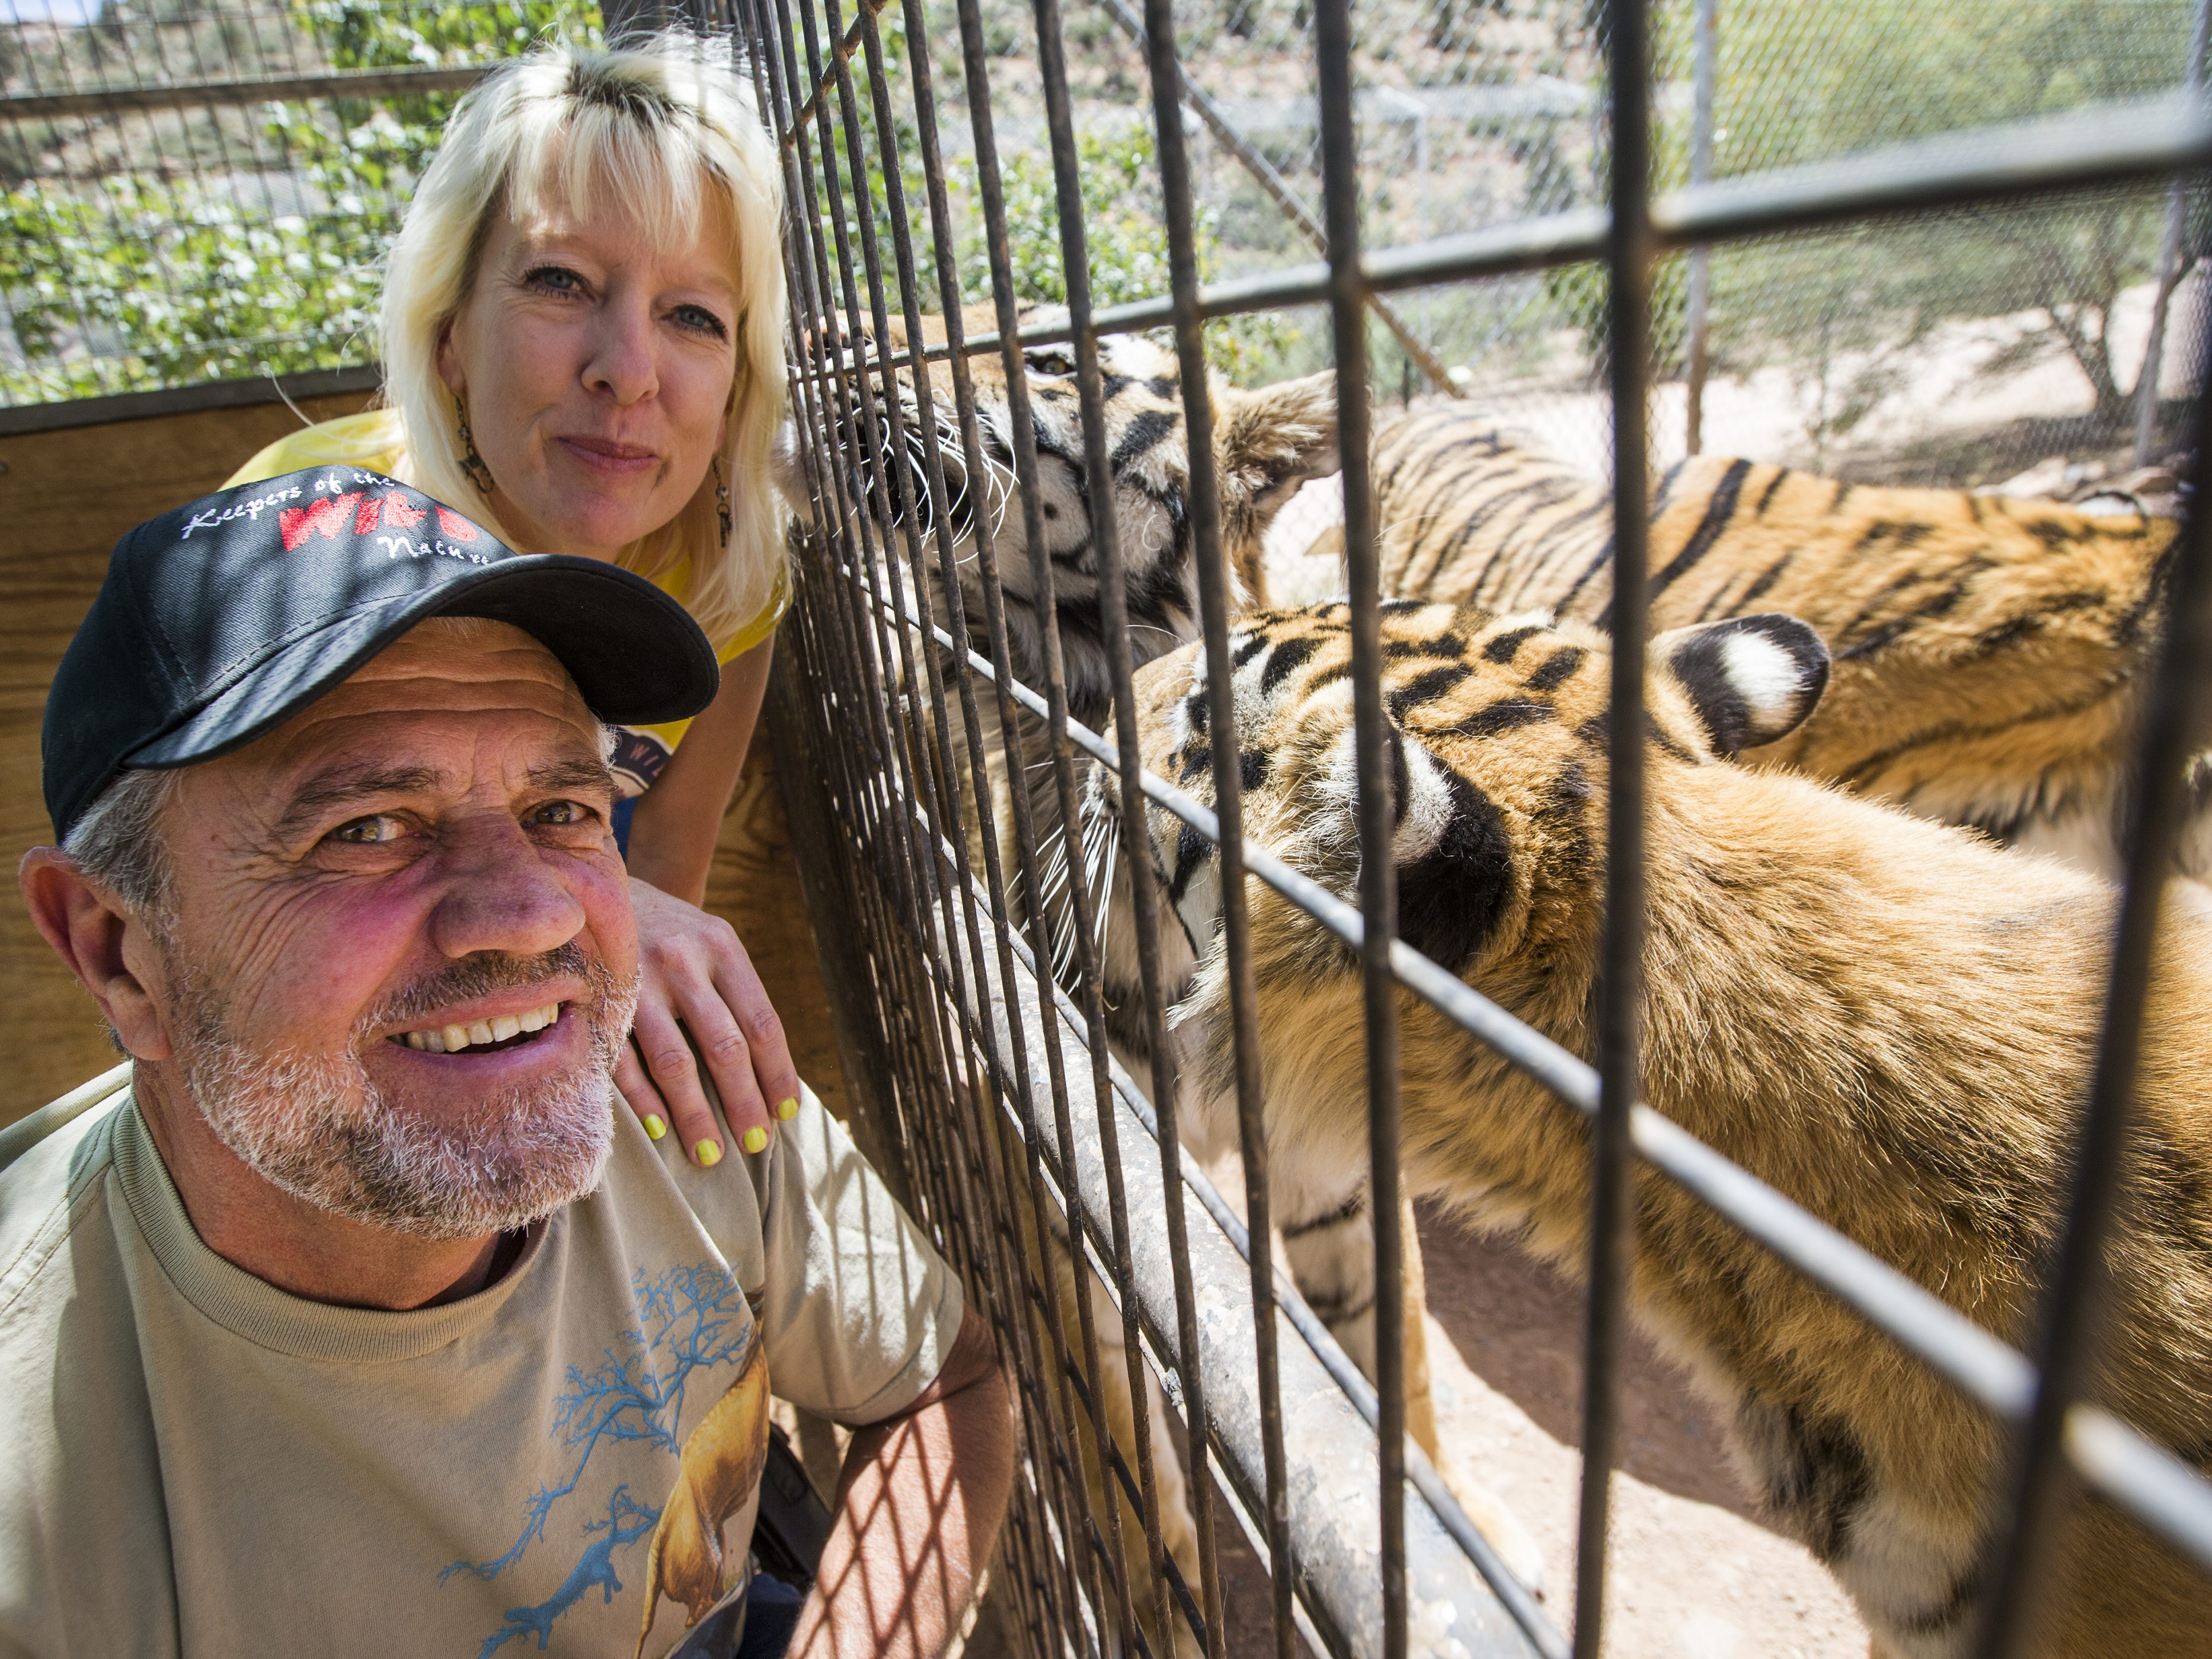 Keepers of the Wild founder Jonathan Kraft and co-director Tina Matejek pose near an enclosure for Bengal tigers, in Valentine, Ariz., on May 27, 2015. The nonprofit sanctuary for retired Las Vegas show tigers and other exotic animals is looking to expand north of Kingman.